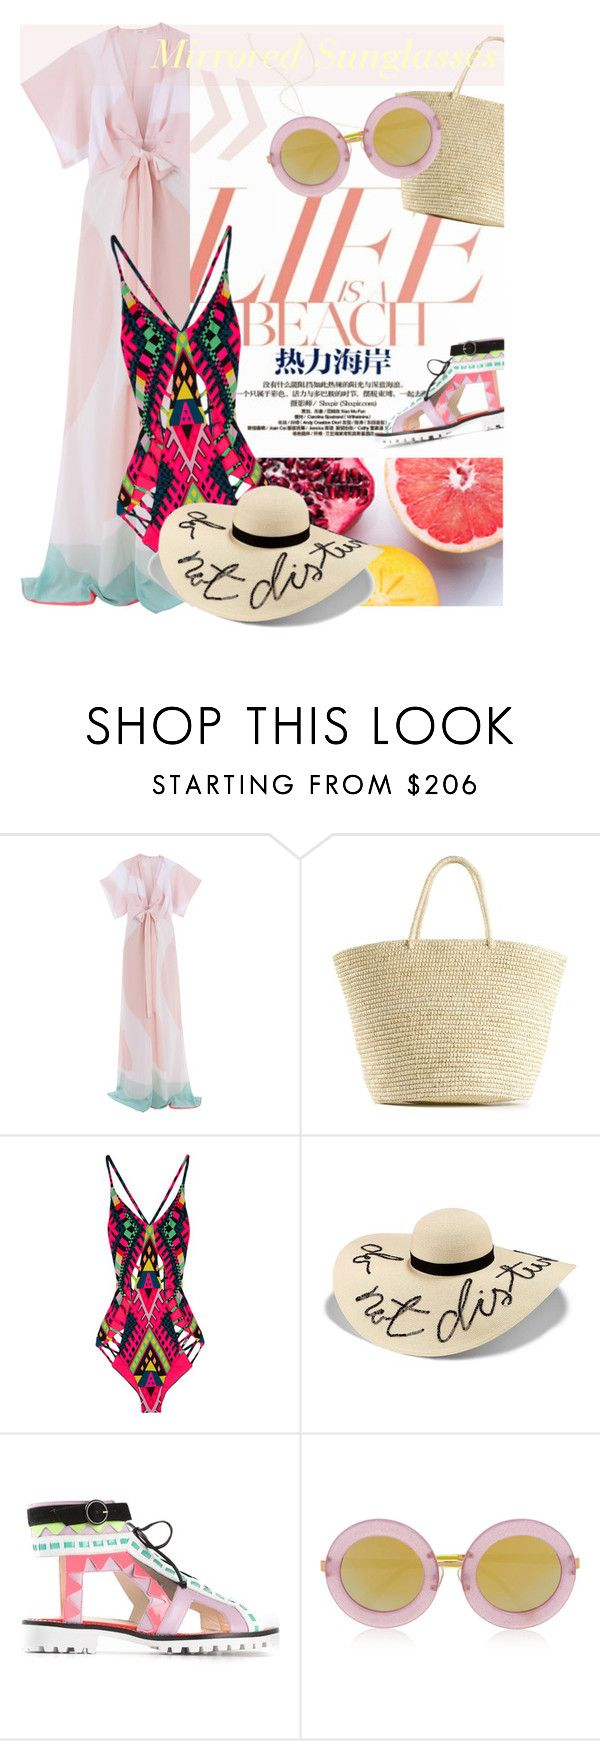 """Life Is A Beach: Mirrored Sunglasses"" by junglover ❤ liked on Polyvore featuring Issa, Sensi Studio, Mara Hoffman, Eugenia Kim, Sophia Webster, Markus Lupfer, polyvoreeditorial, polyvorecontest and springsummer2015"